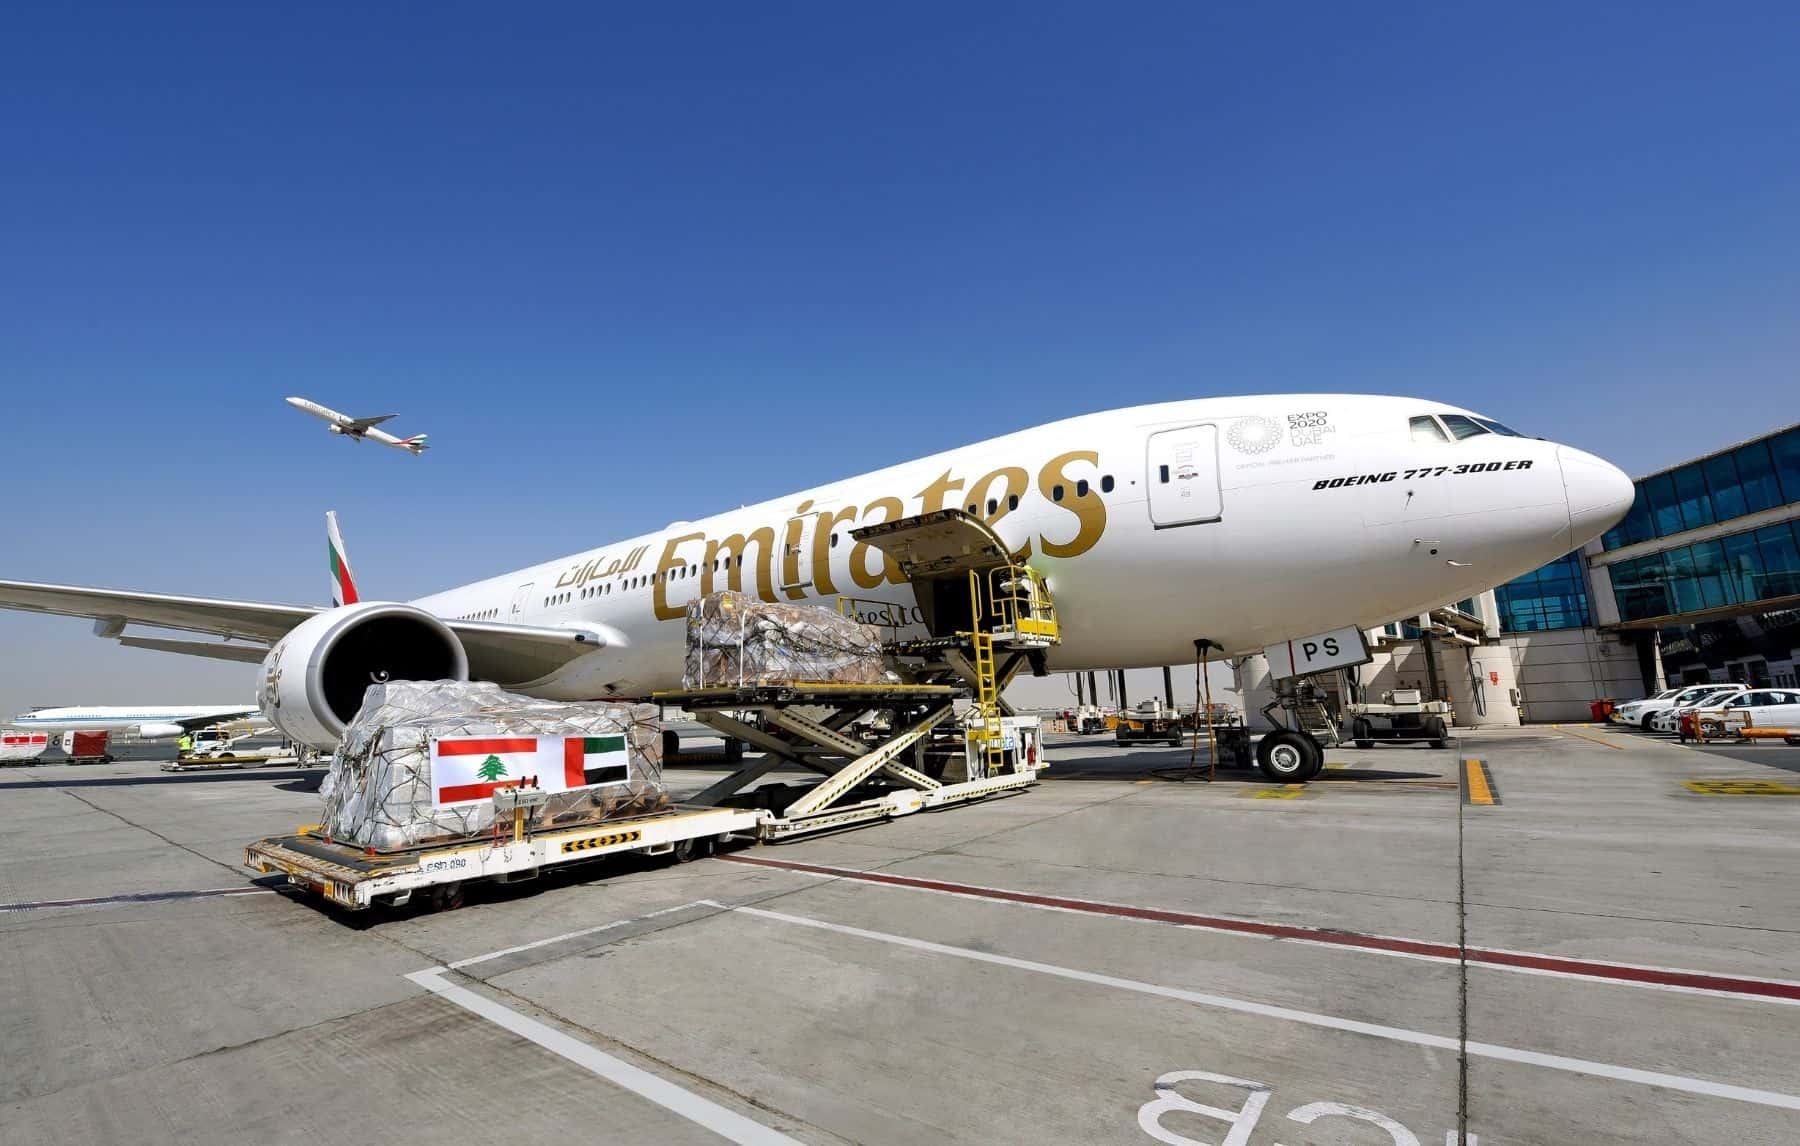 Emirates continues Beirut relief efforts through generosity of its customers, helping to transport more than 160,000 kilograms of vital aid and supplies